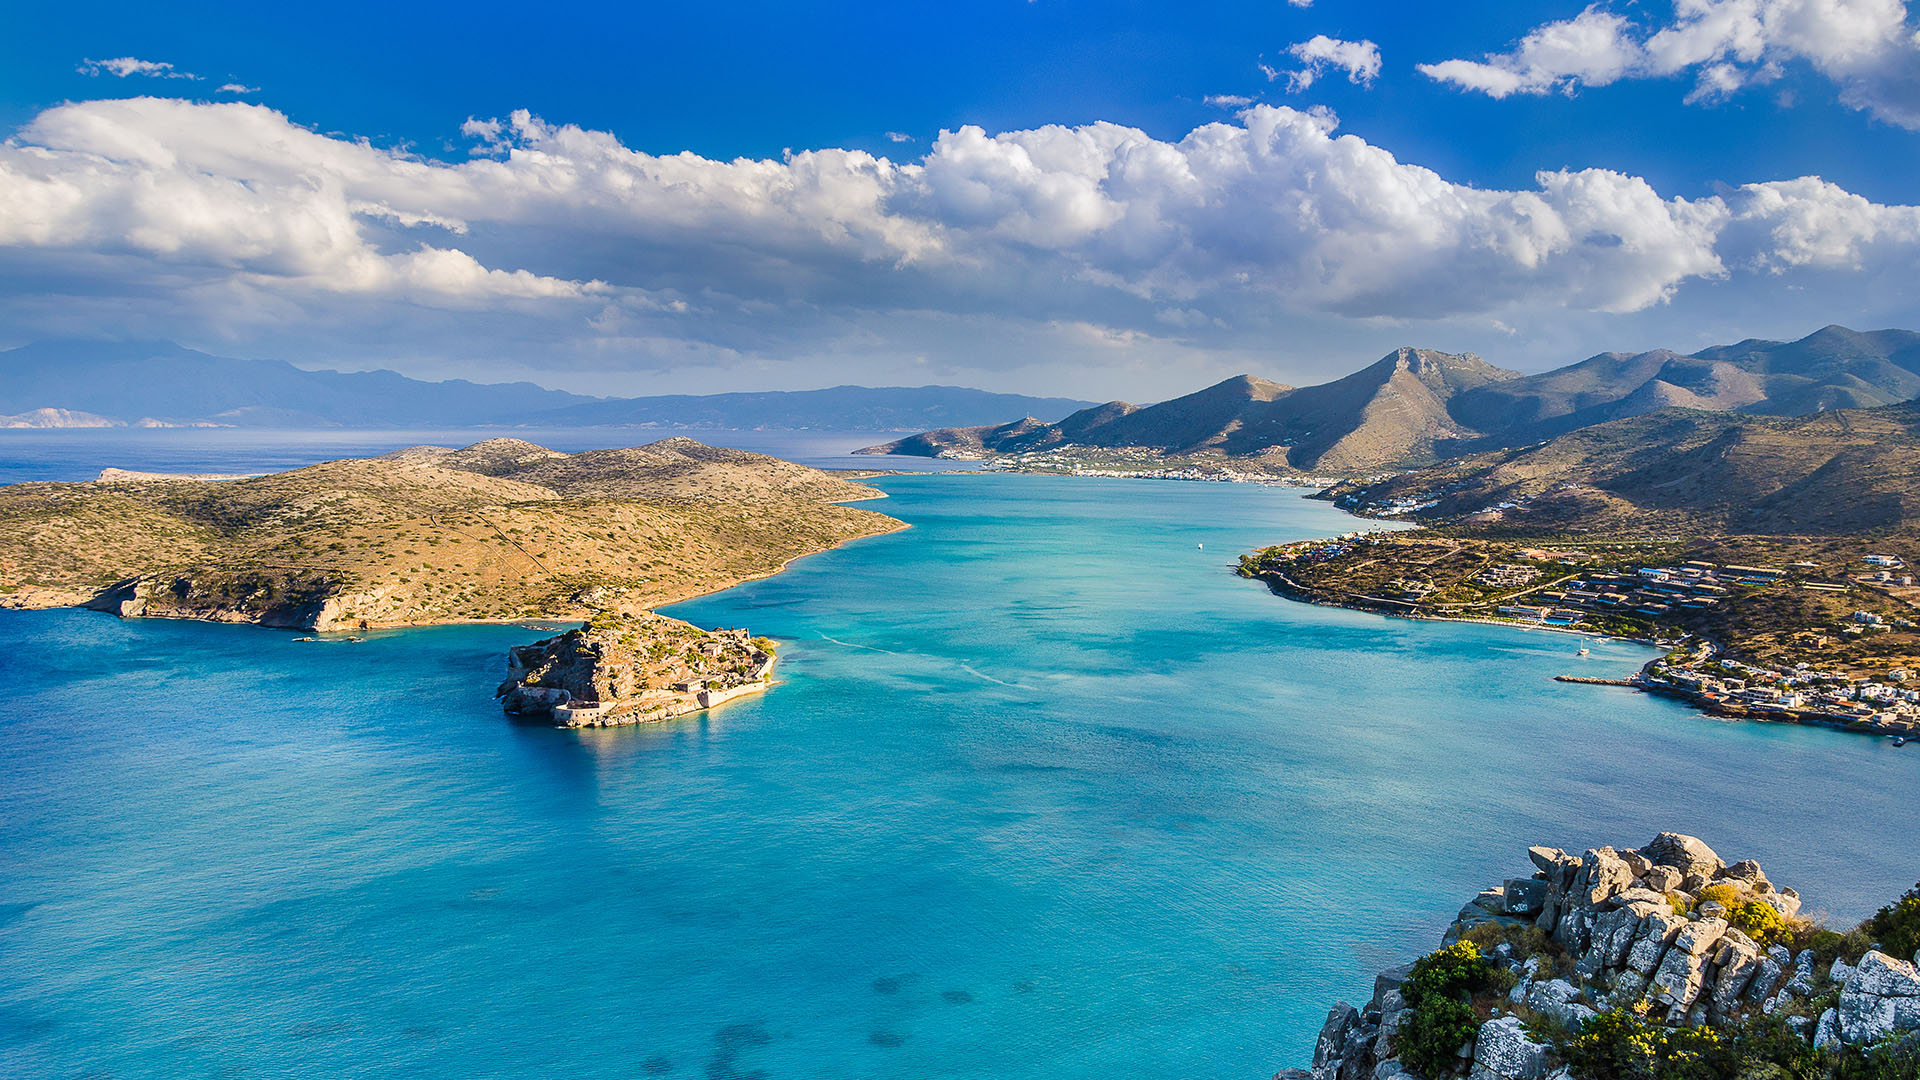 Are you ready to visit Crete?